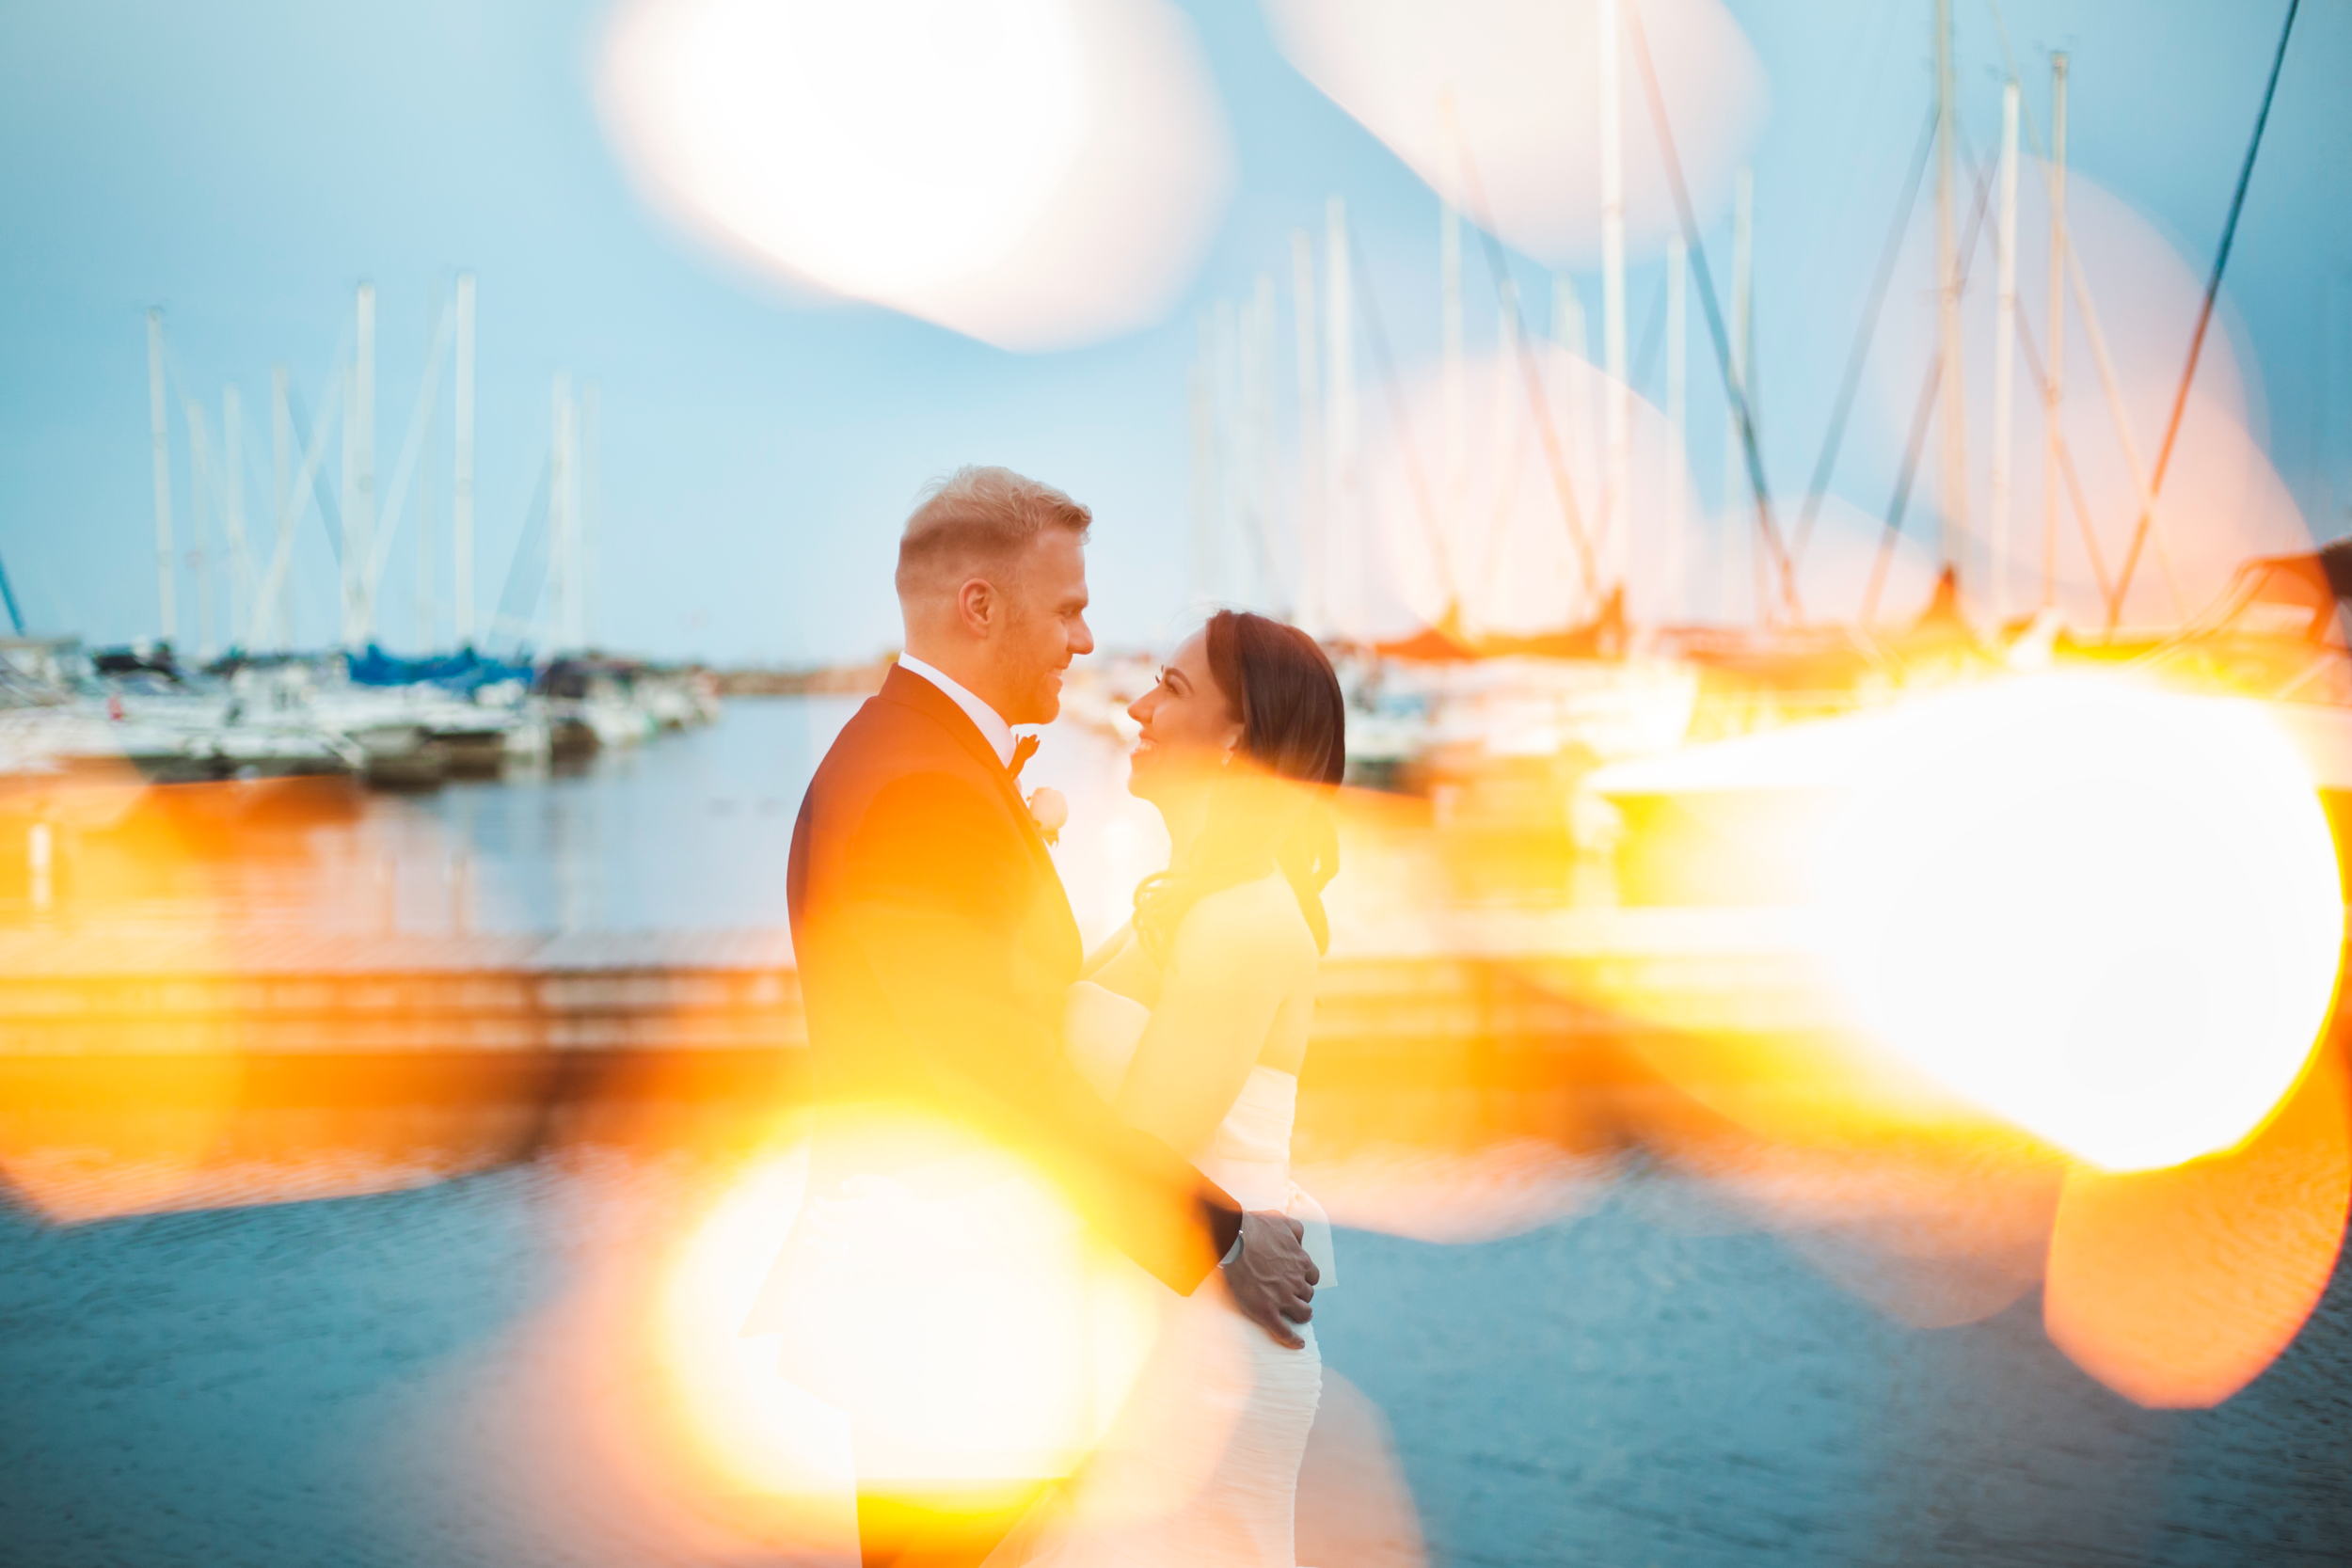 Wedding-Harbour-Banquet-Center-Oakville-Photographer-Wedding-Hamilton-Saint-James-Espresso-Downtown-HamOnt-GTA-Niagara-Toronto-Moments-by-Lauren-Photography-Photo-Image-82.png